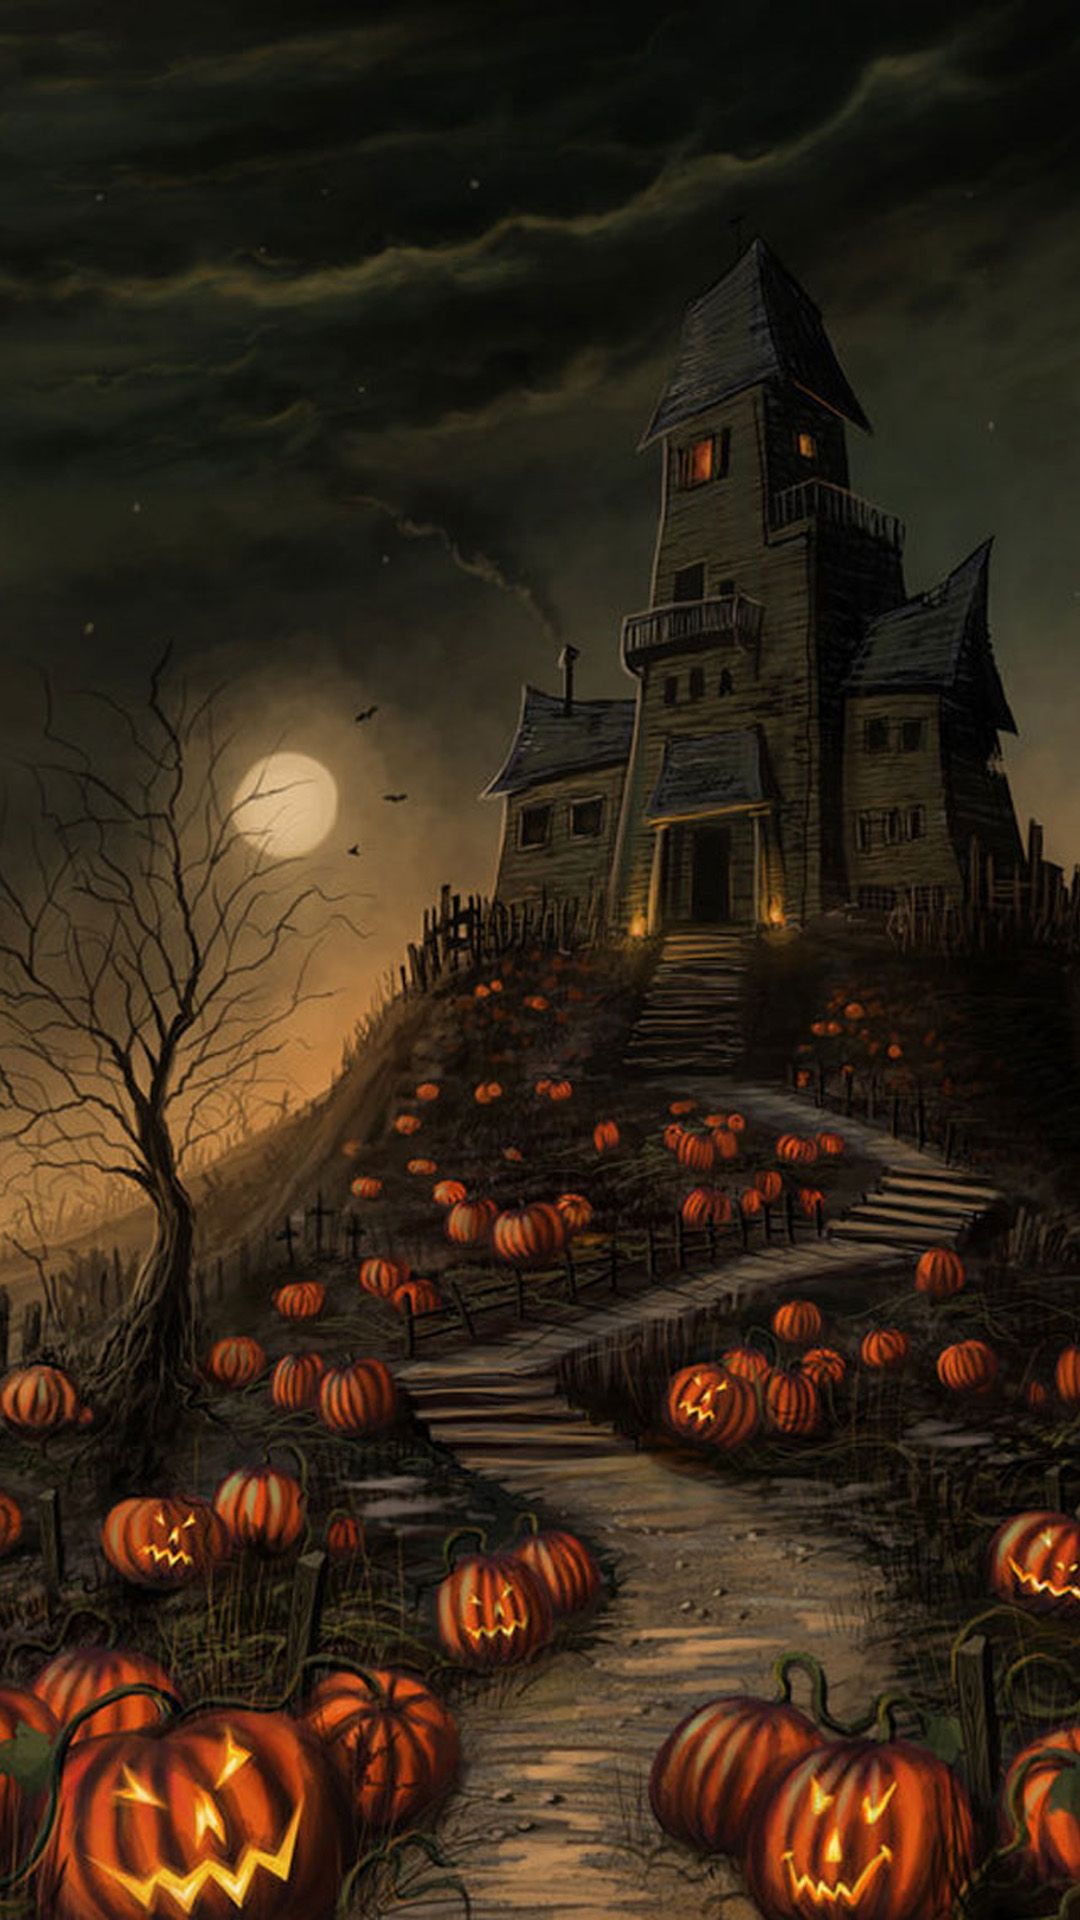 Haunted House Halloween Wallpapers Top Free Haunted House